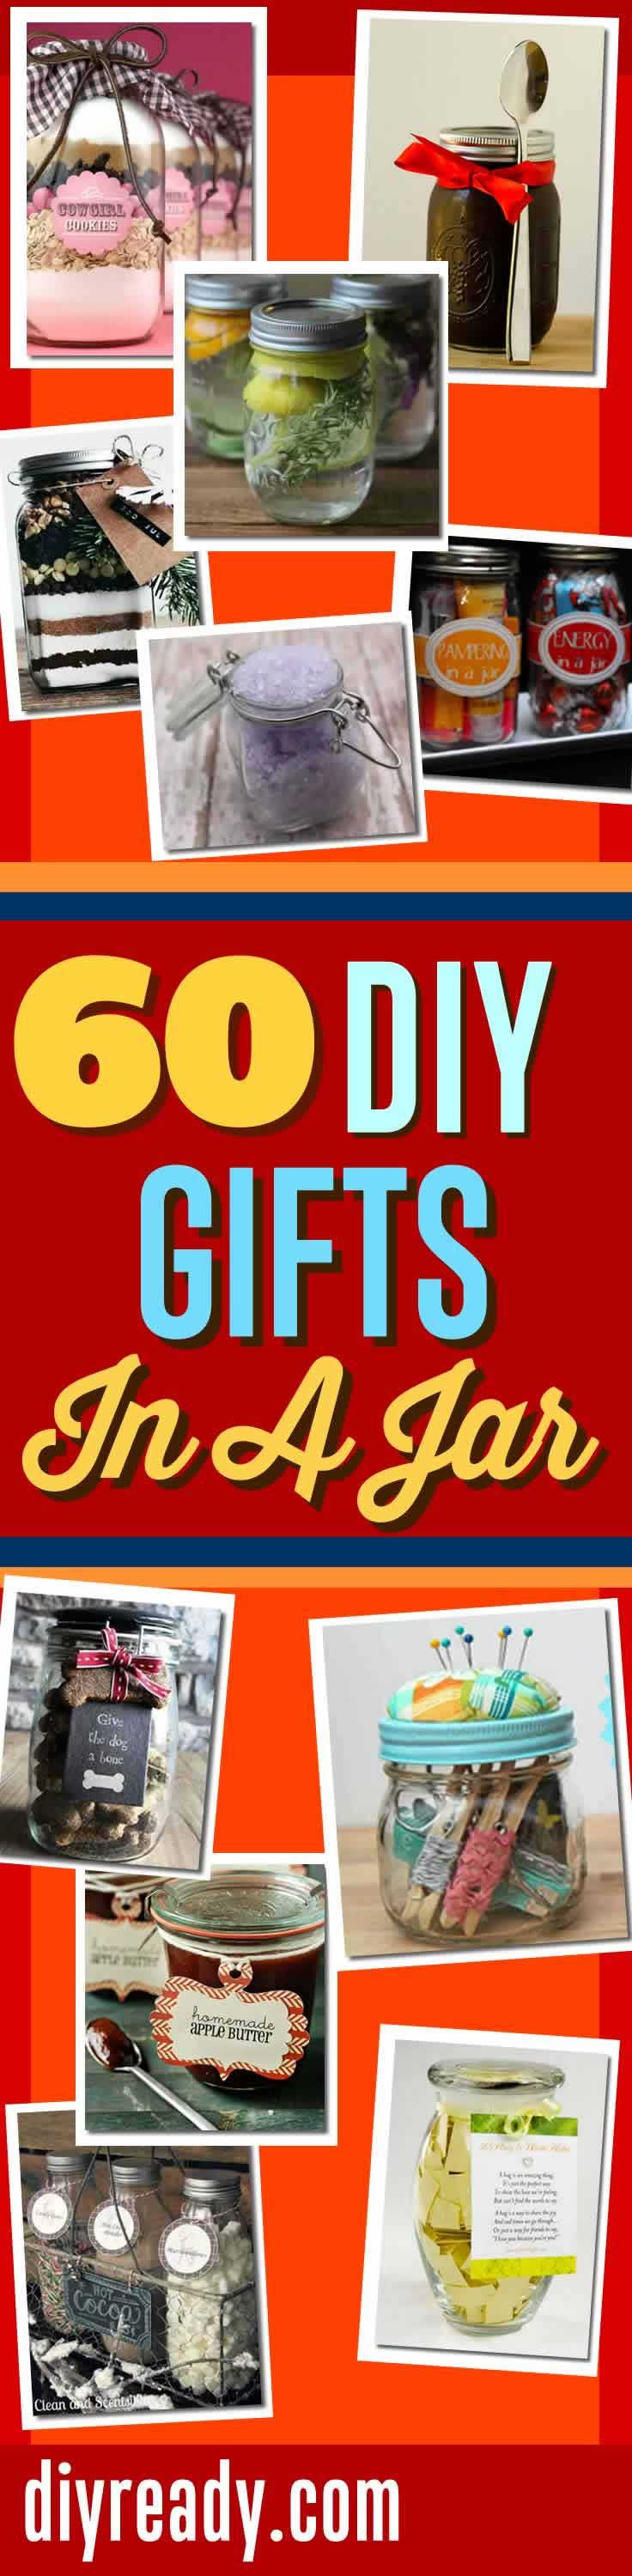 DIY Gifts In A Jar | Mason Jar Gift Ideas and Cool and Easy DIY Gifts http://diyready.com/60-cute-and-easy-diy-gifts-in-a-jar-christmas-gift-ideas/